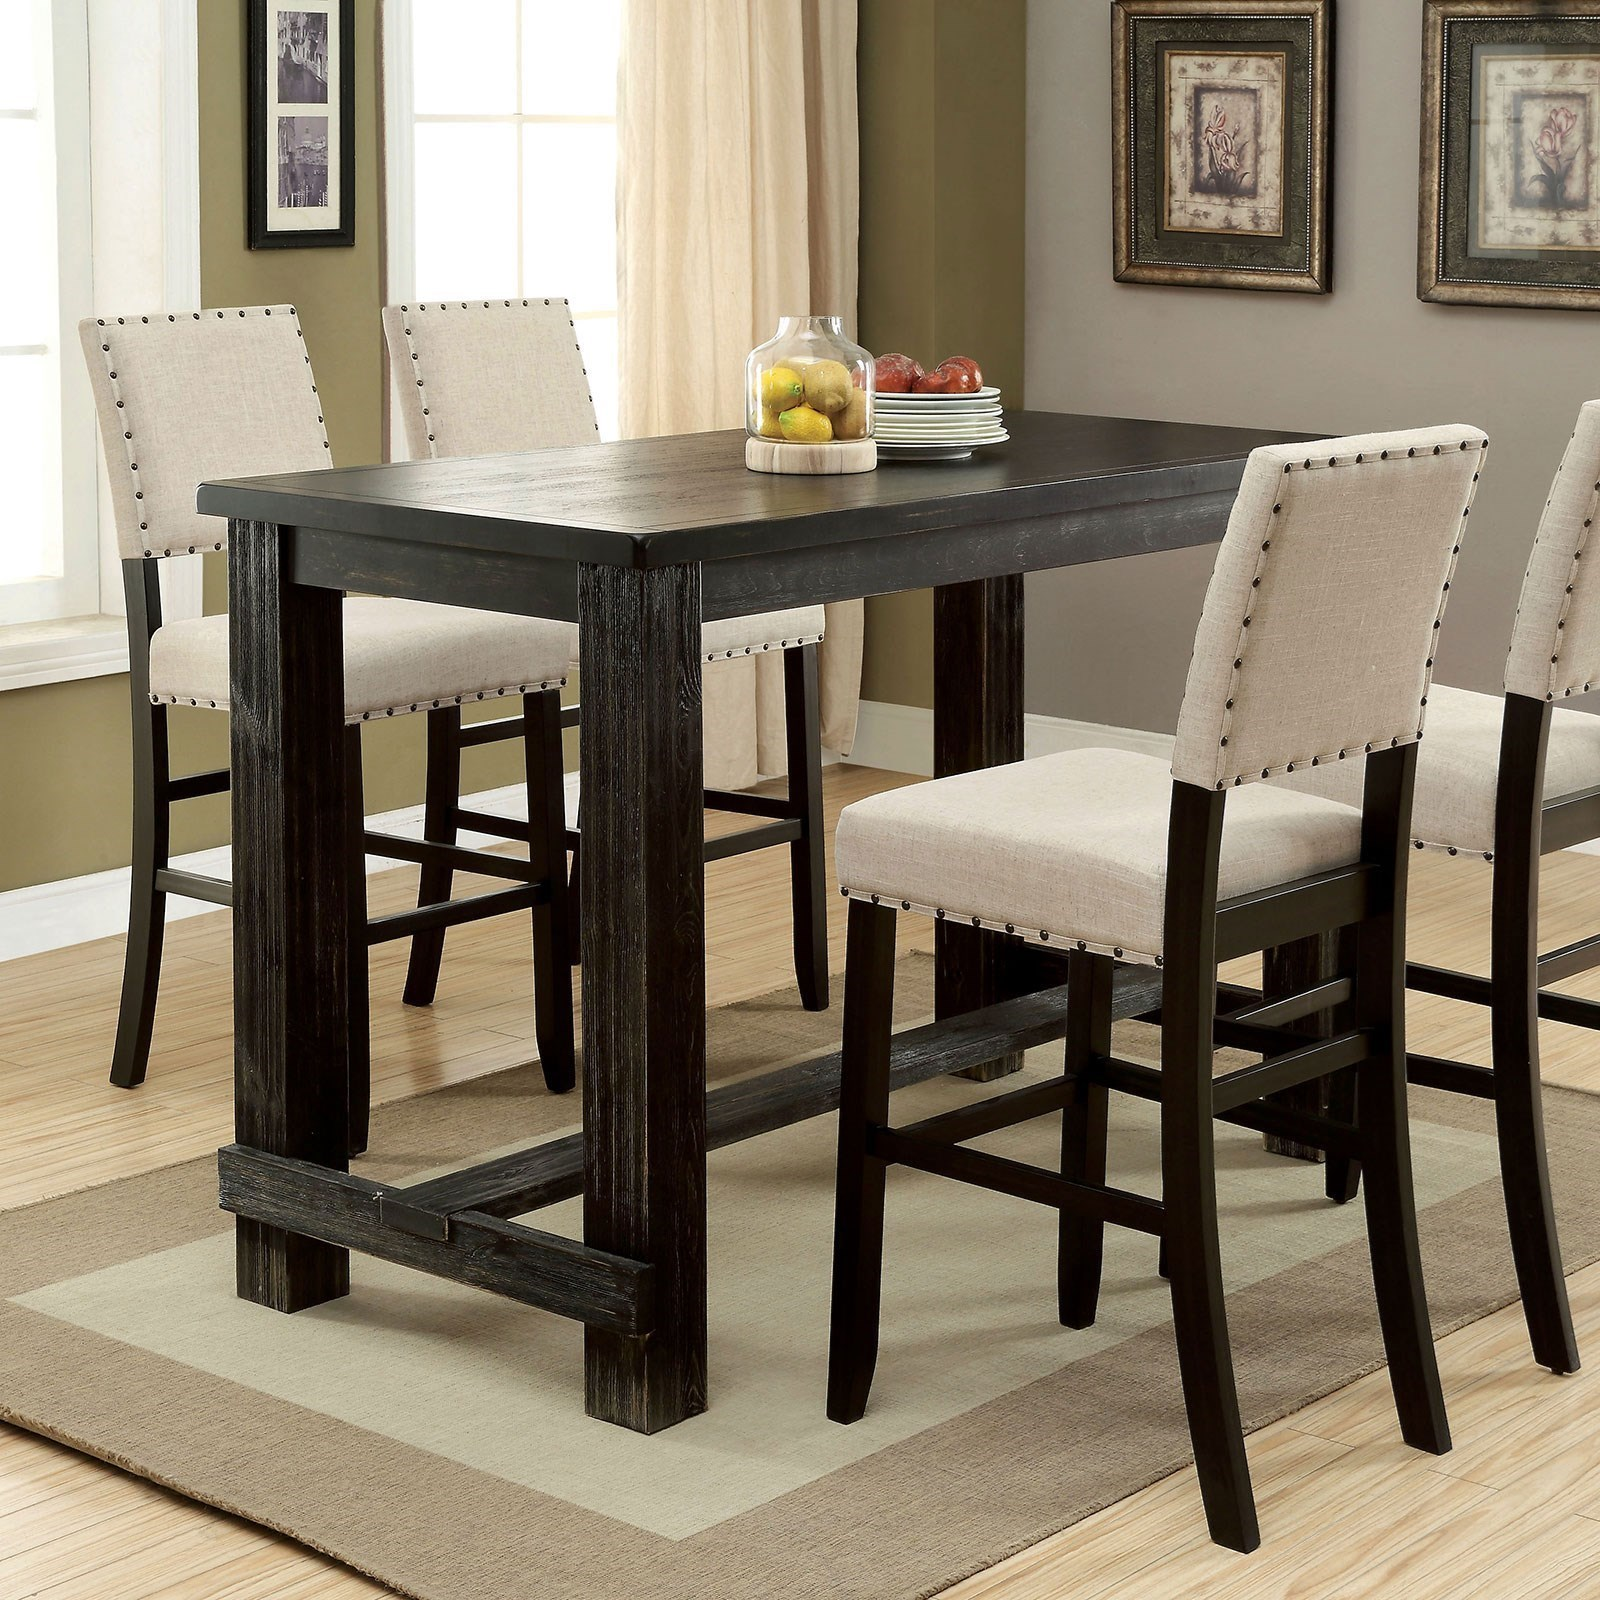 Bar Height Table And Chairs Sania Ii Rustic Bar Height Table By Furniture Of America At Furniture Superstore Nm